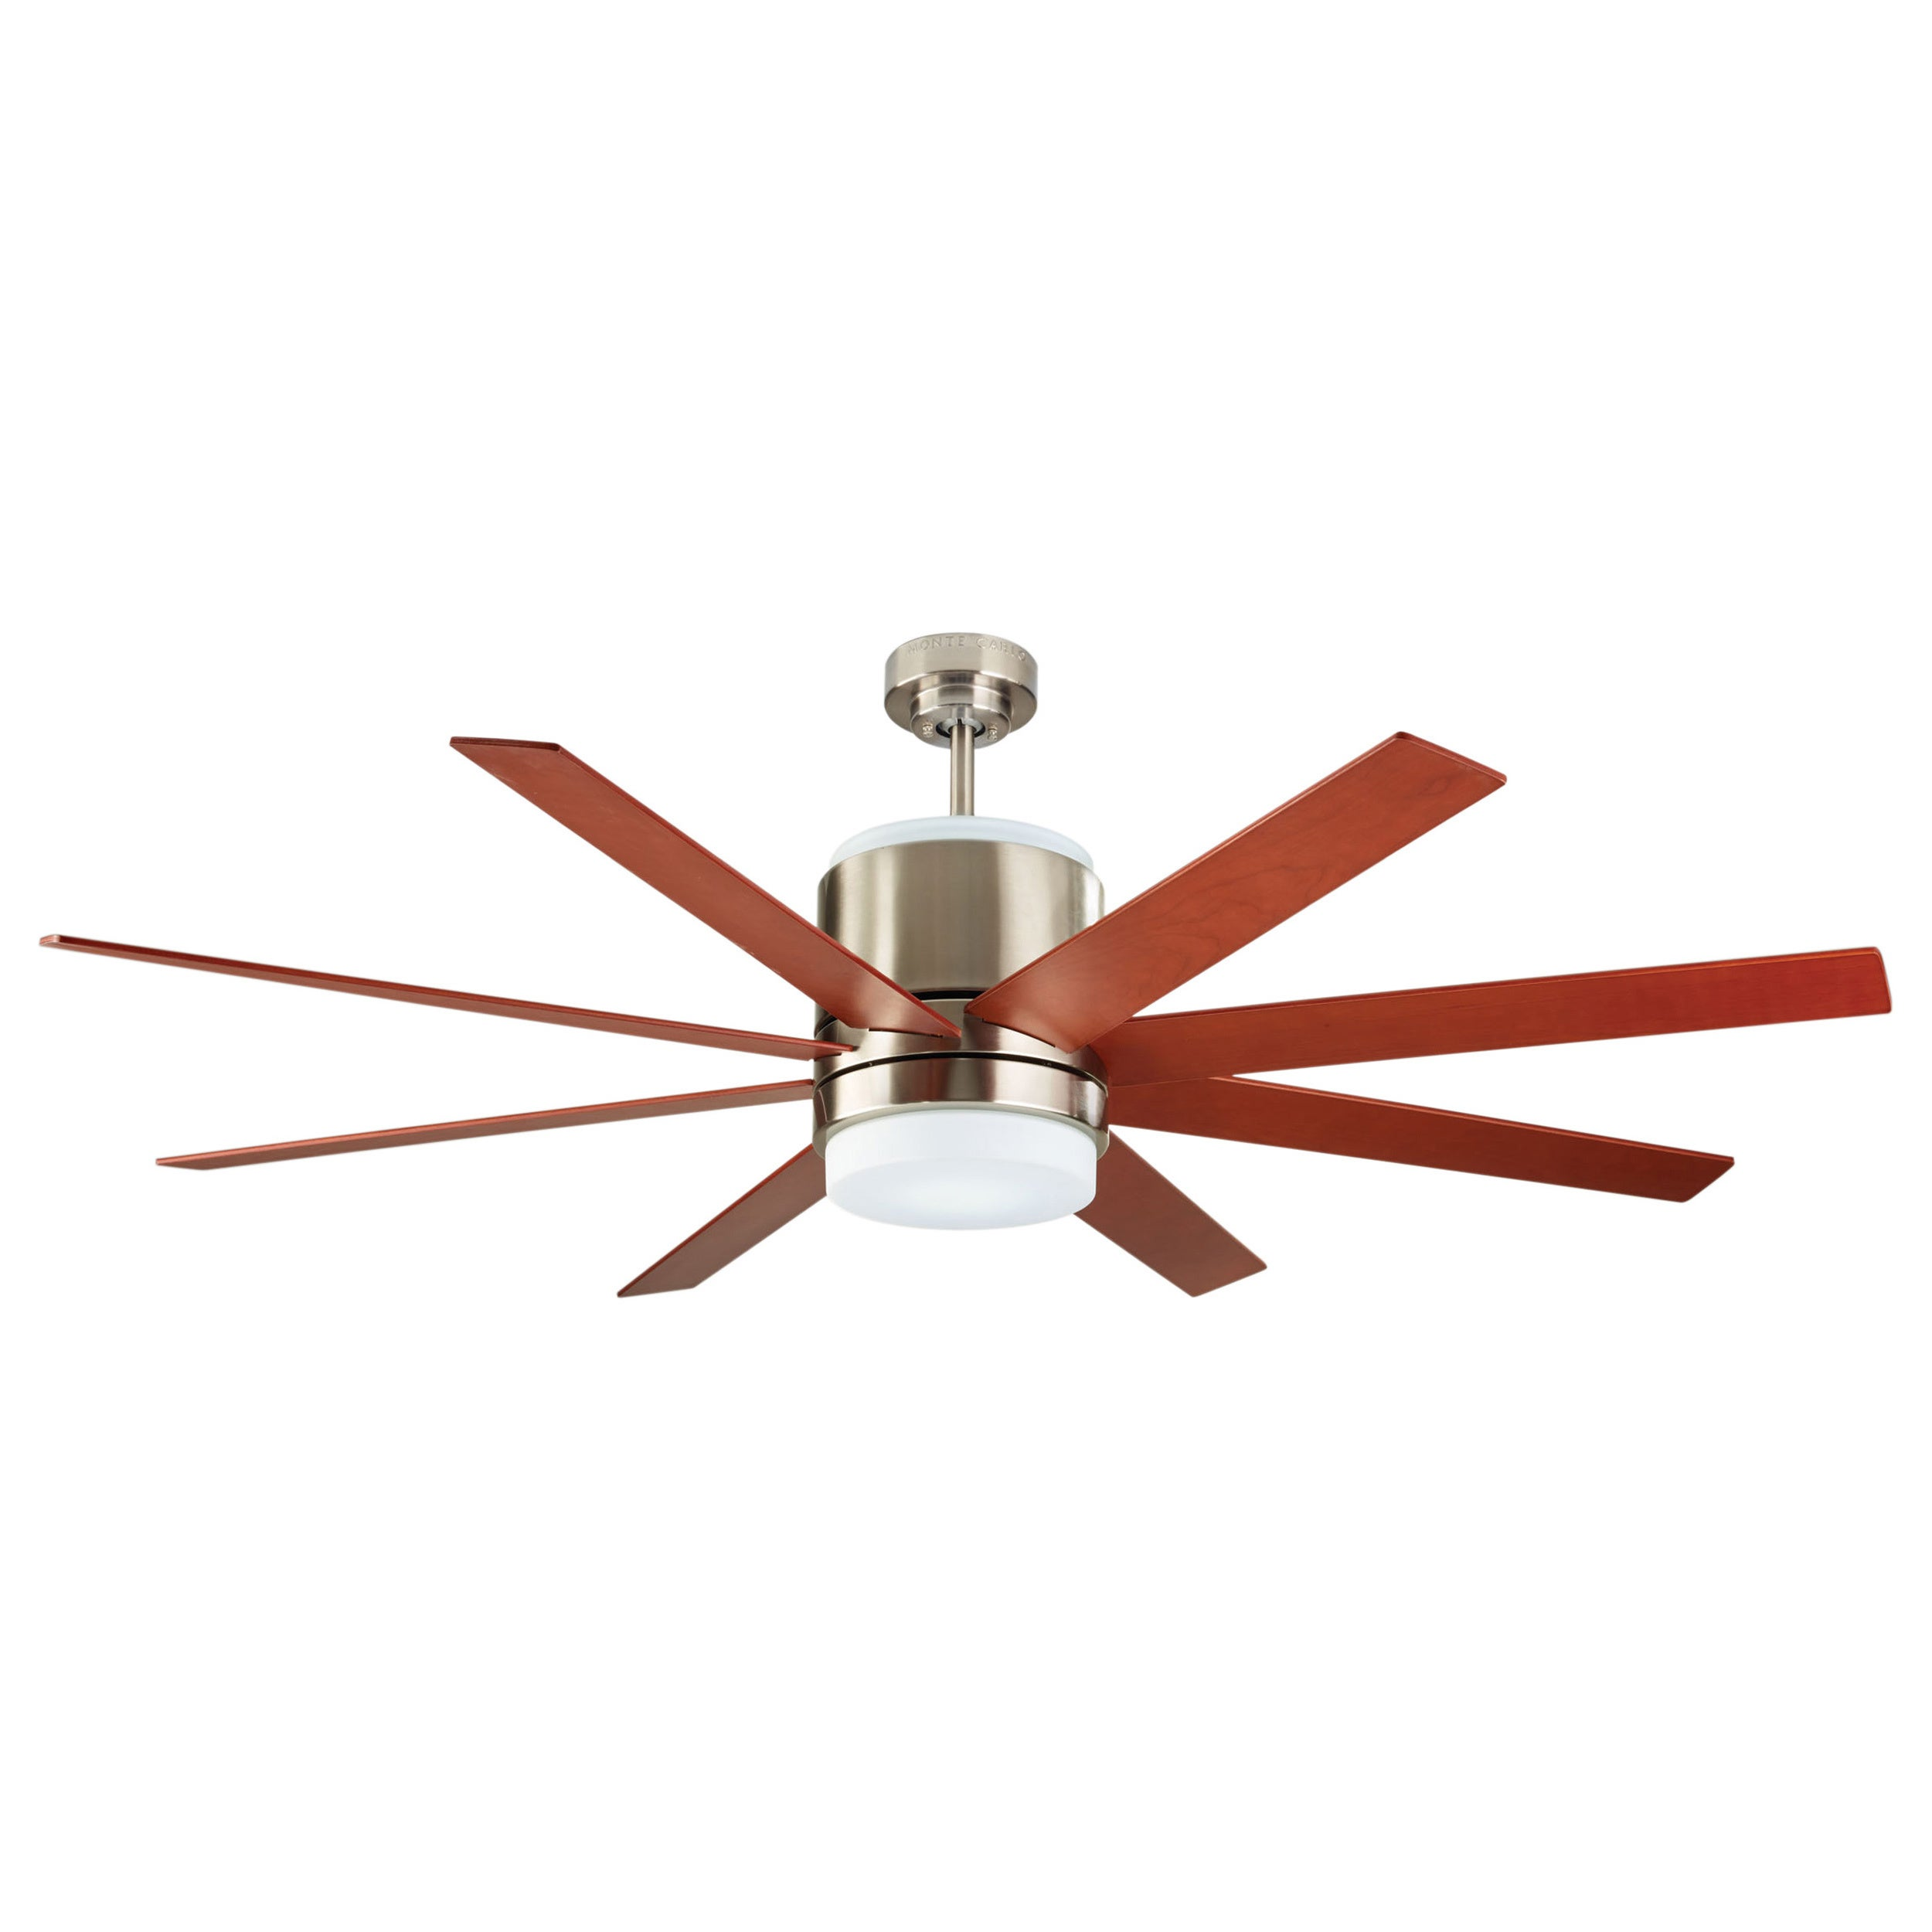 Monte Carlo SB Araya 58-inch 8-blade Brushed Steel Ceiling Fan at Sears.com